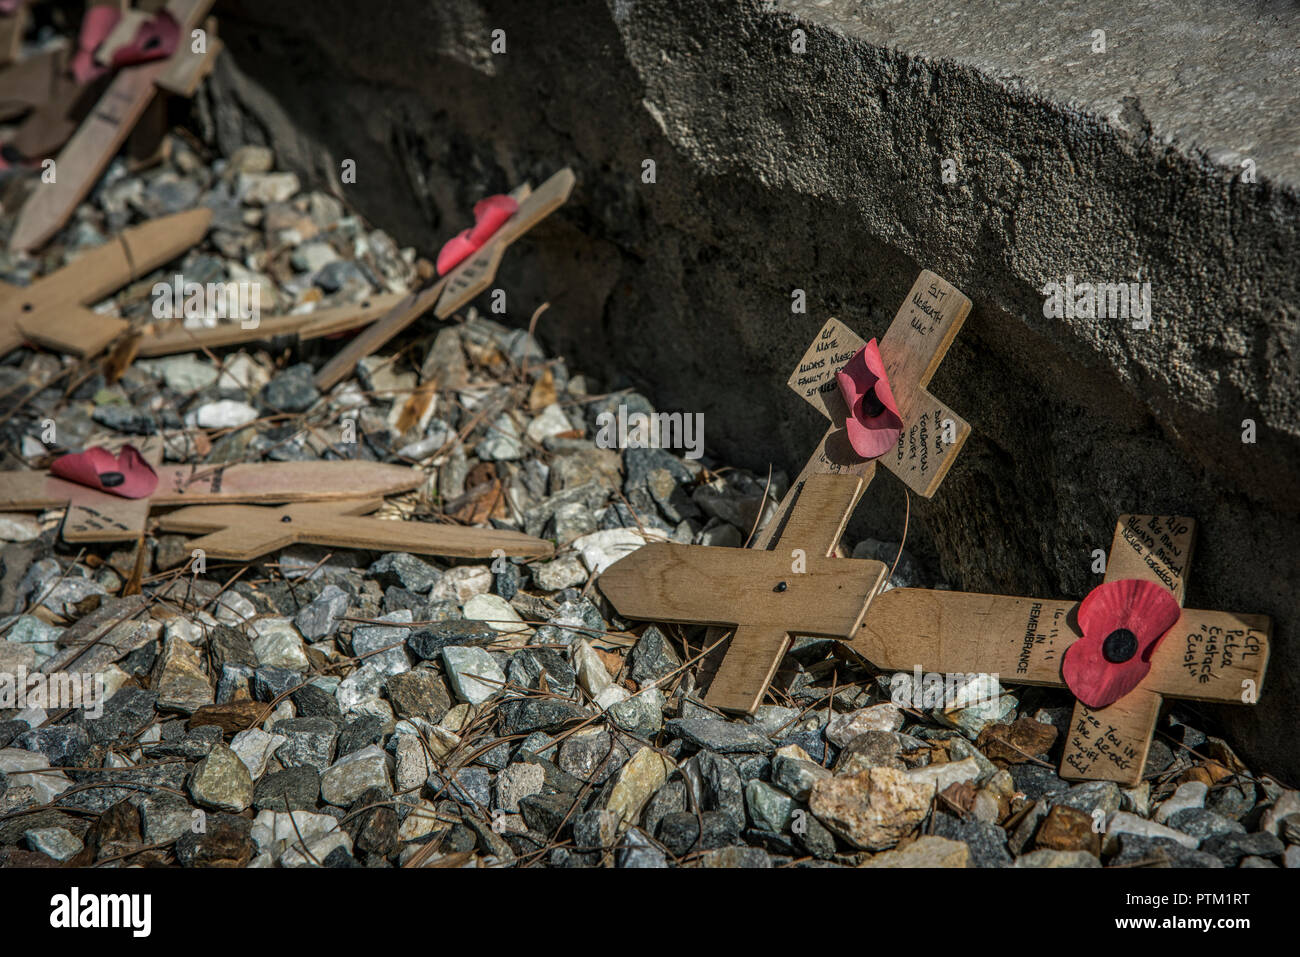 Crosses laid down in remembrance at the British Cemetery in Kabul in Afghanistan. - Stock Image